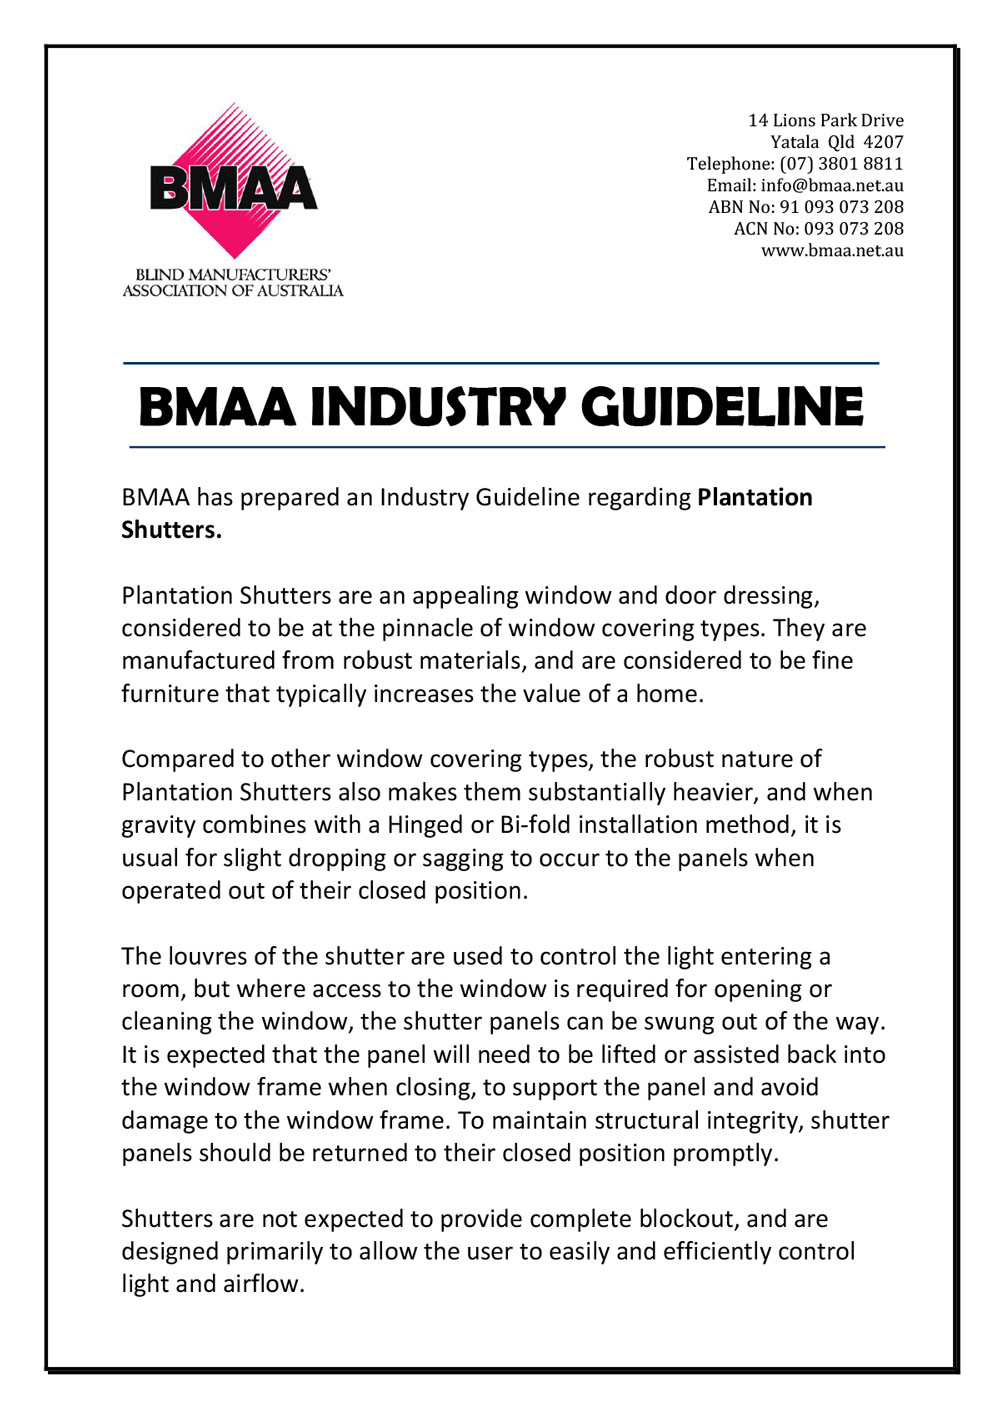 BMAA Guidelines - Plantation Shutters